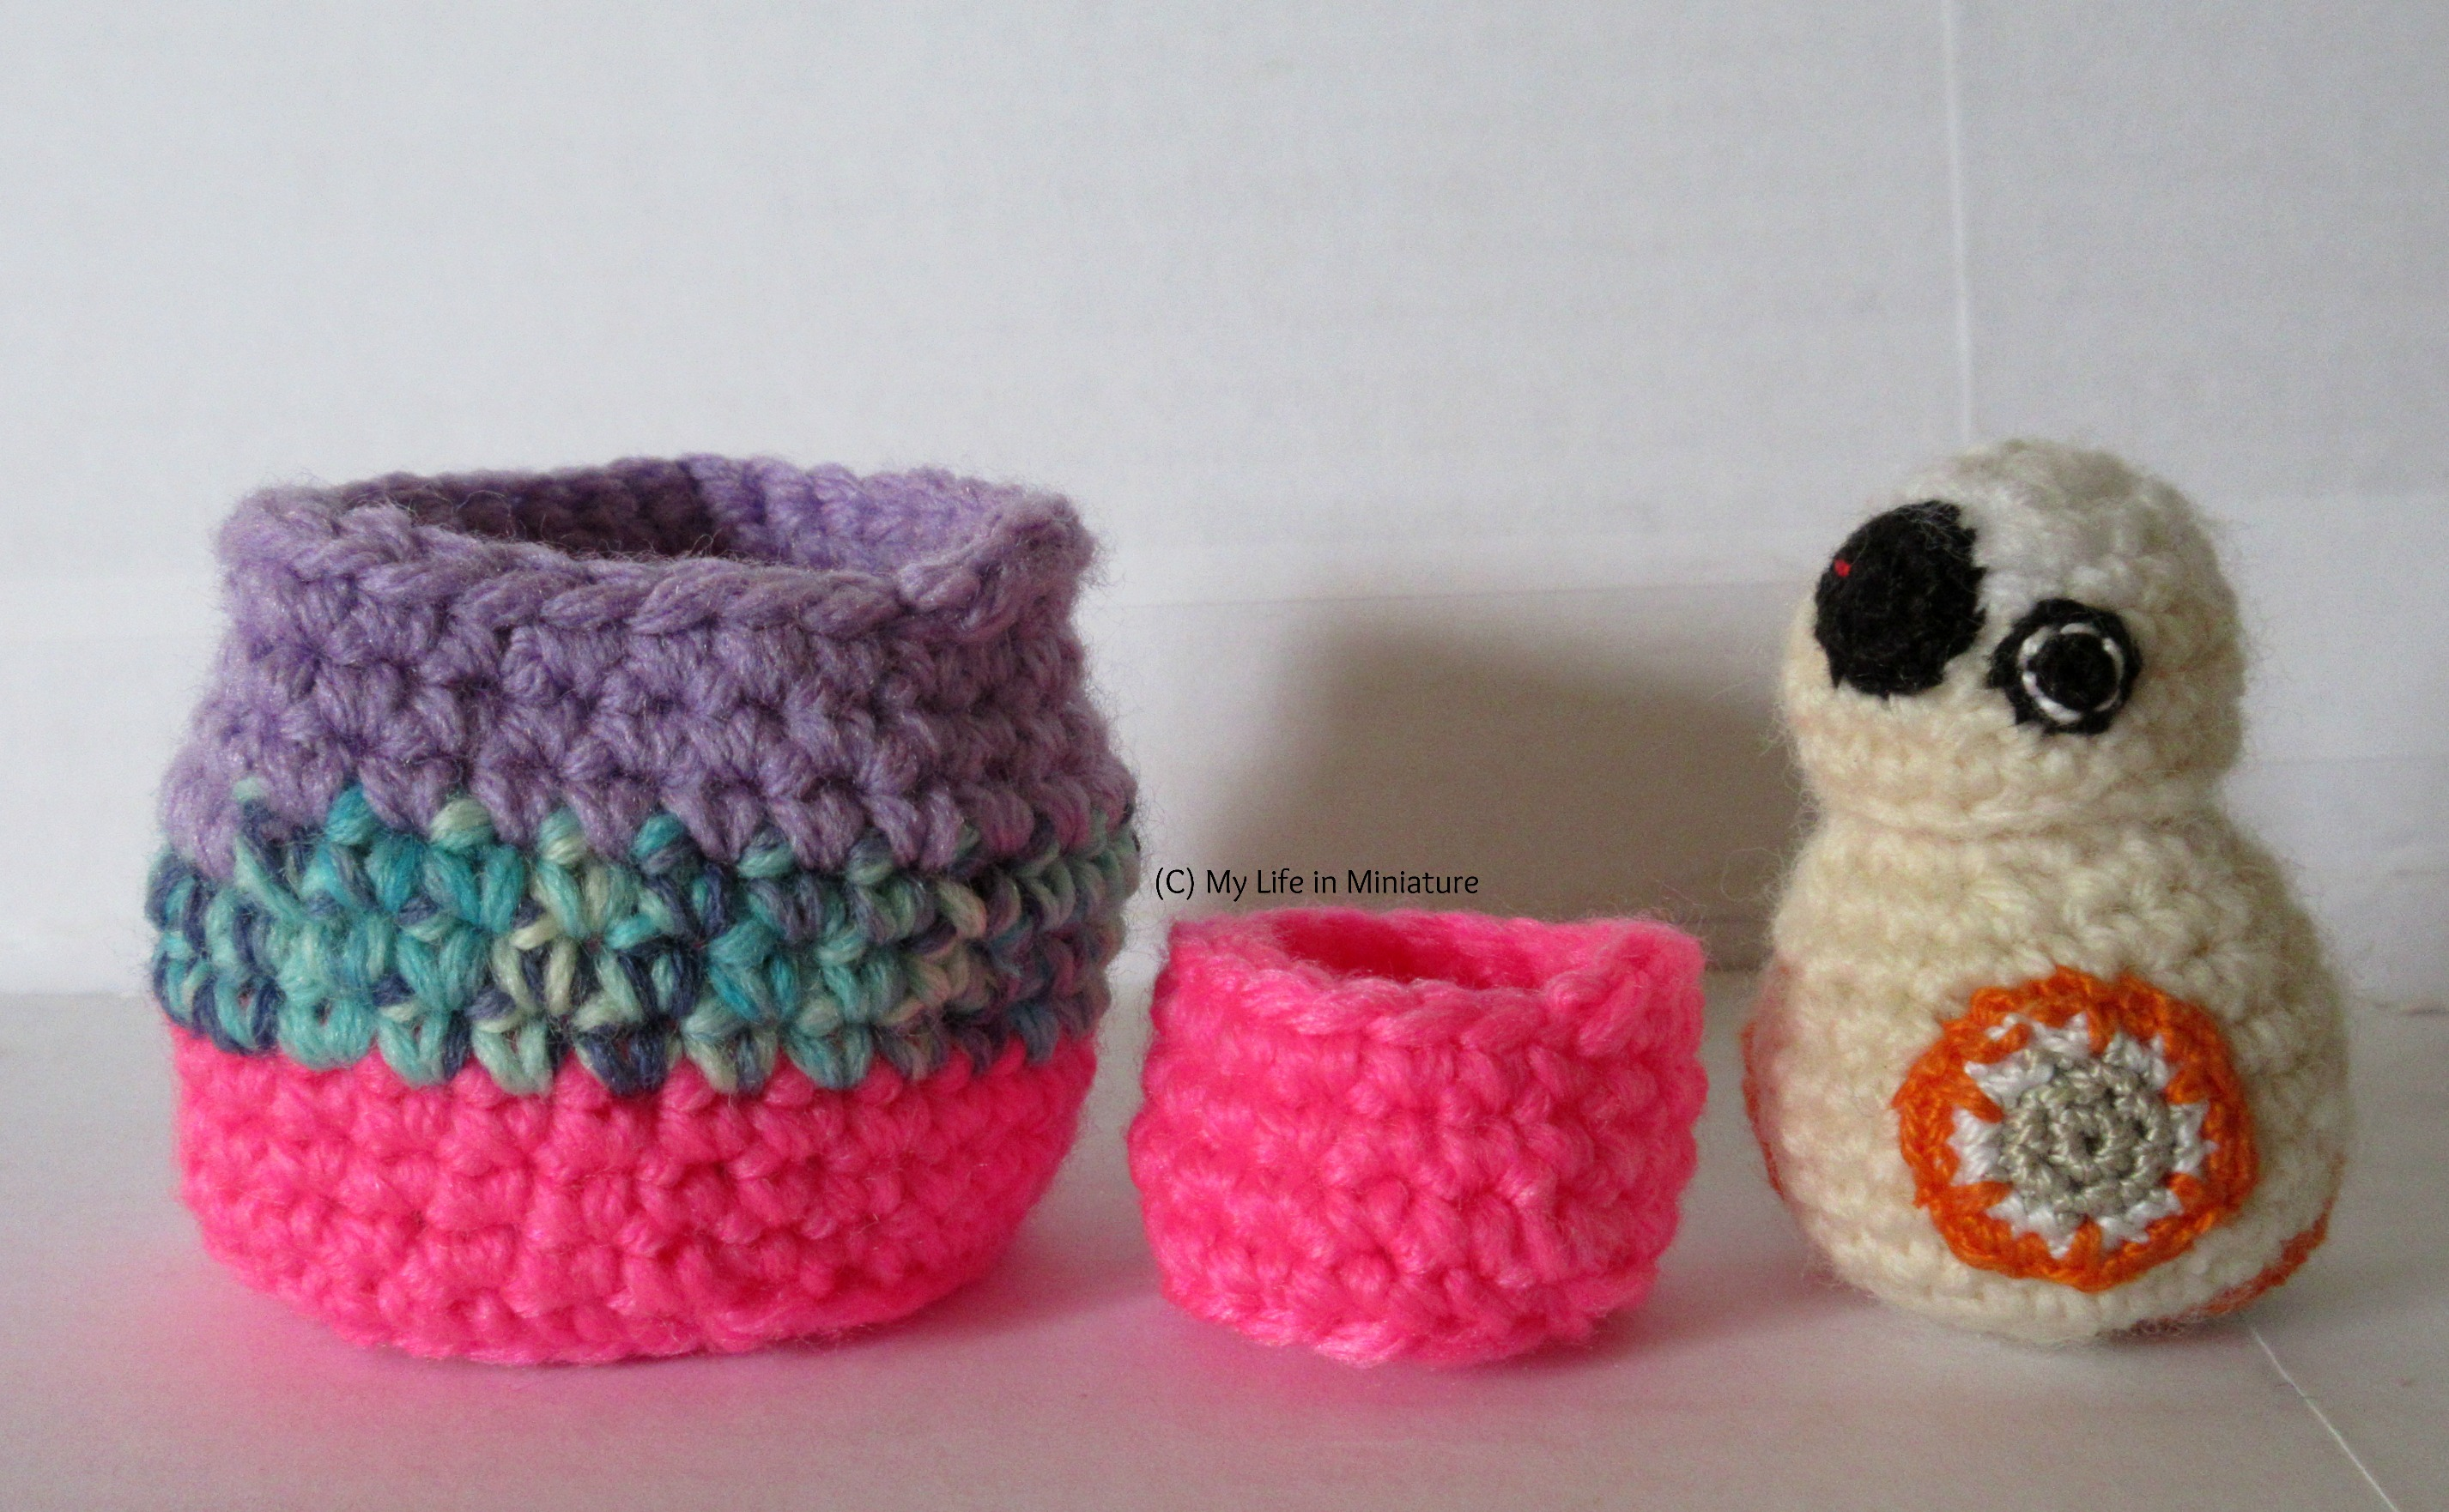 The two birds' nests sit beside a small crocheted BB-8, as a measure of their scale. The larger nest and BB-8 are about the same height, the smaller nest being about half the height.